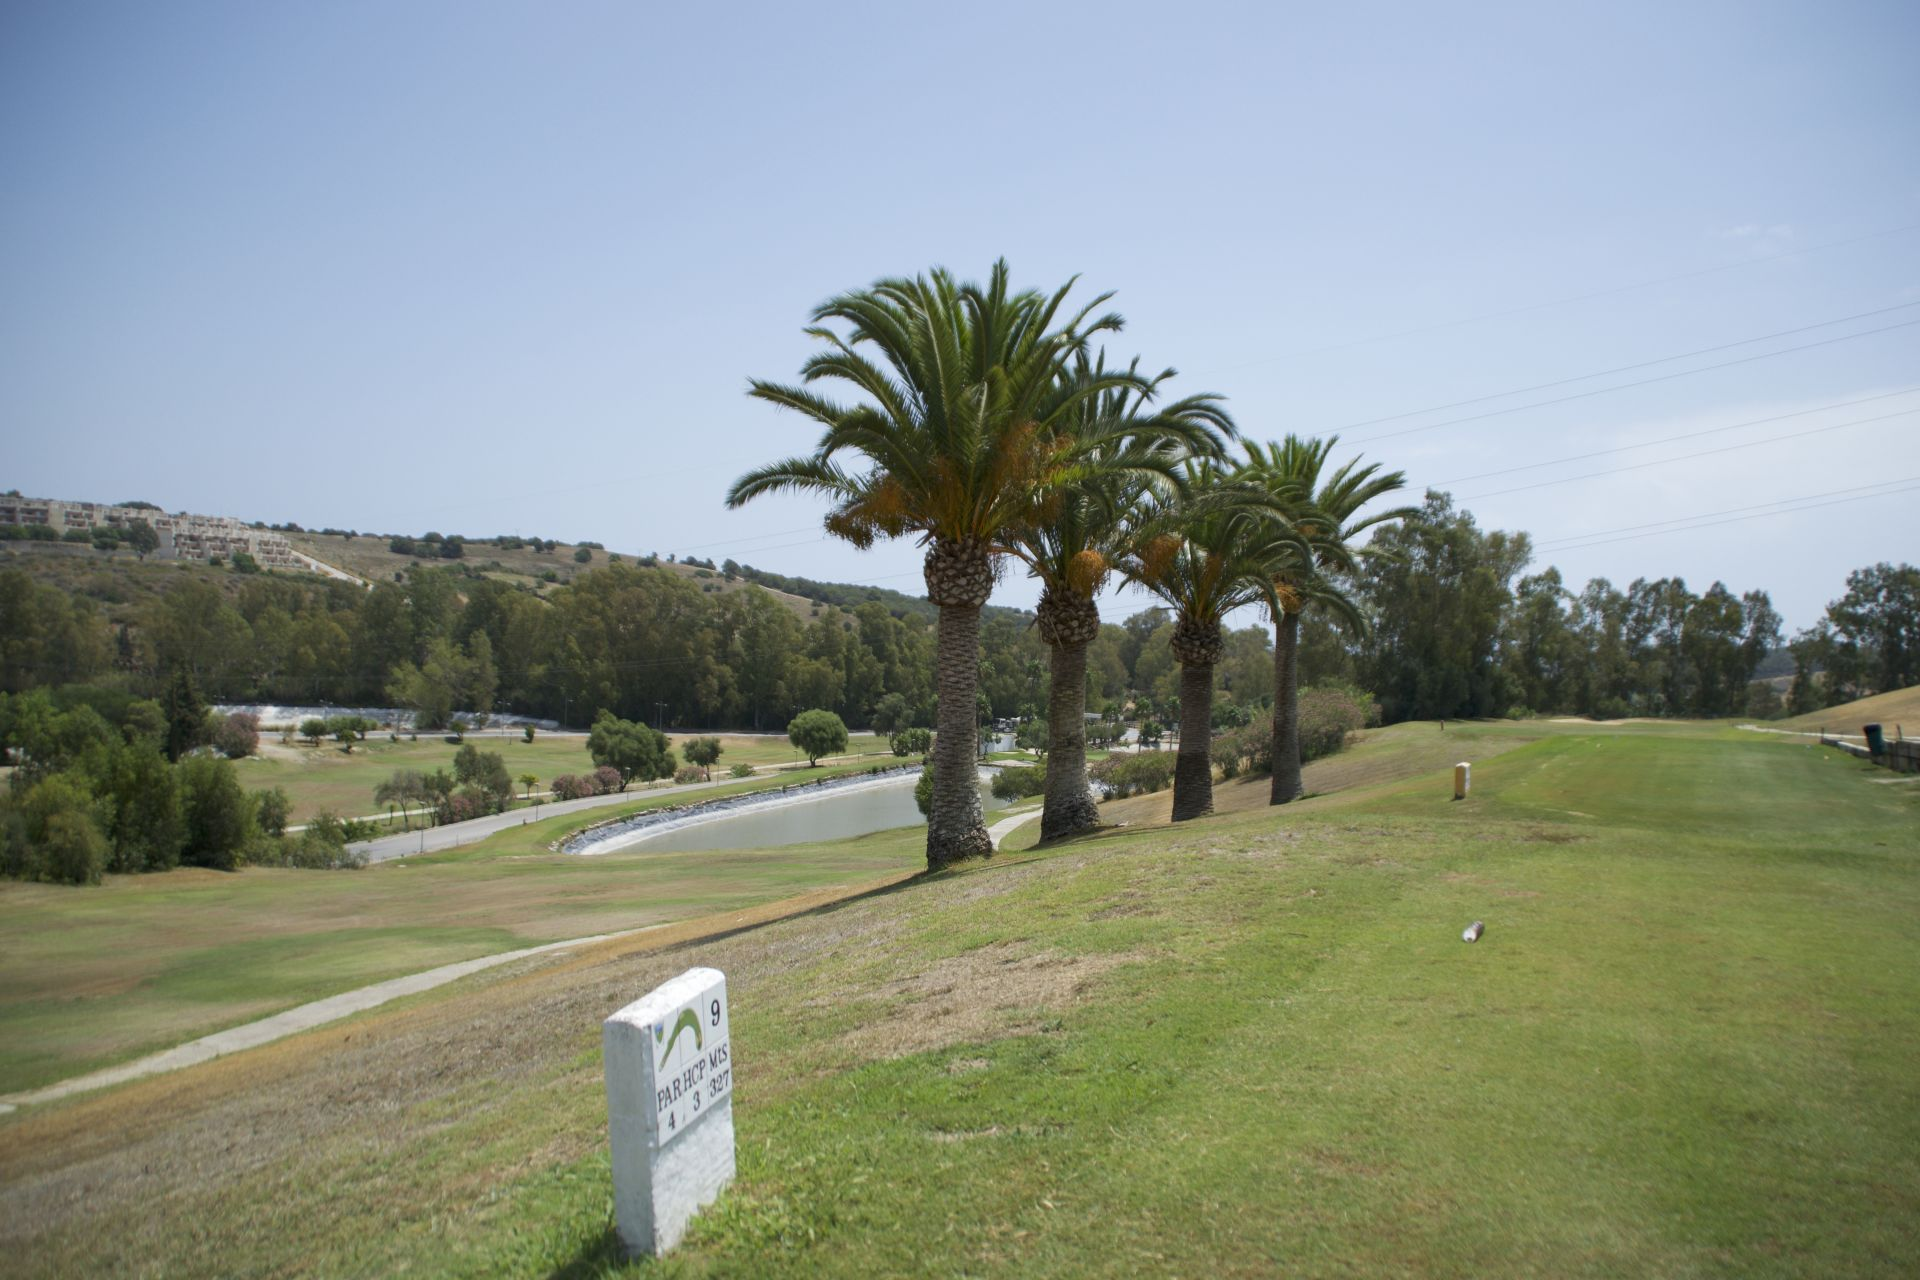 Apartments with views over golf courses in Estepona 12